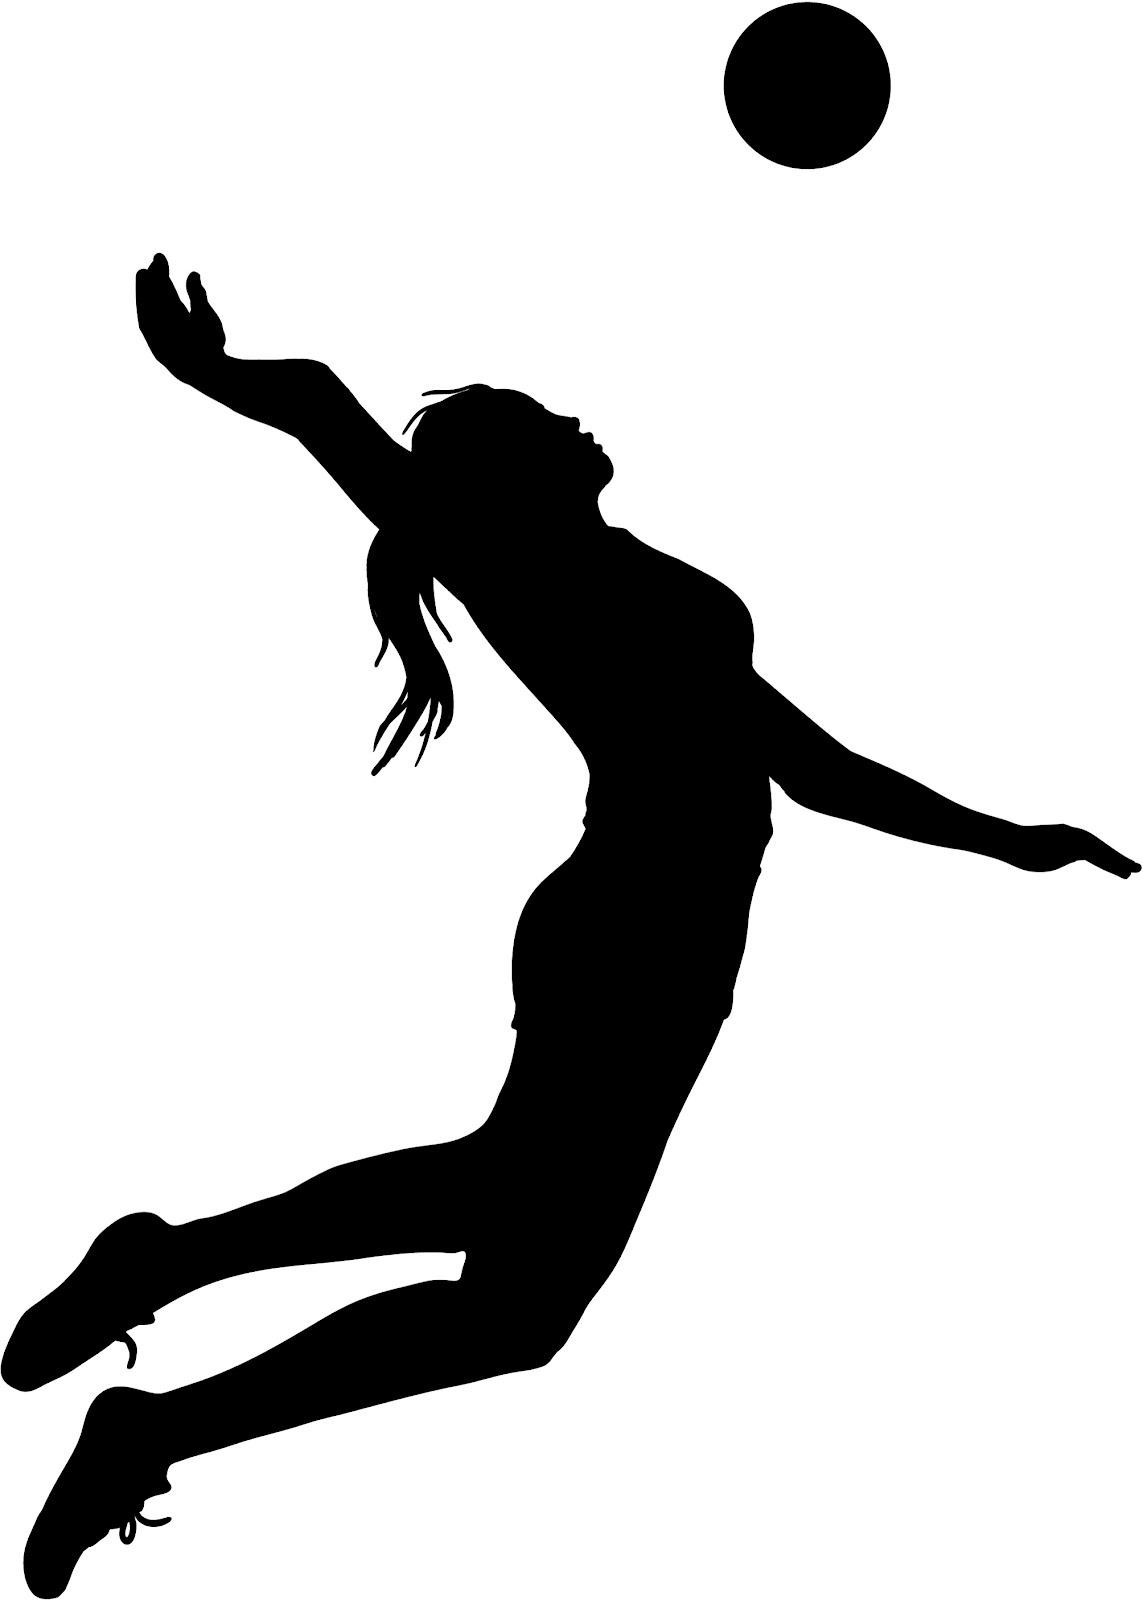 volleyball silhouette clip art at getdrawings com free for rh getdrawings com volleyball player clipart free volleyball player setting clipart